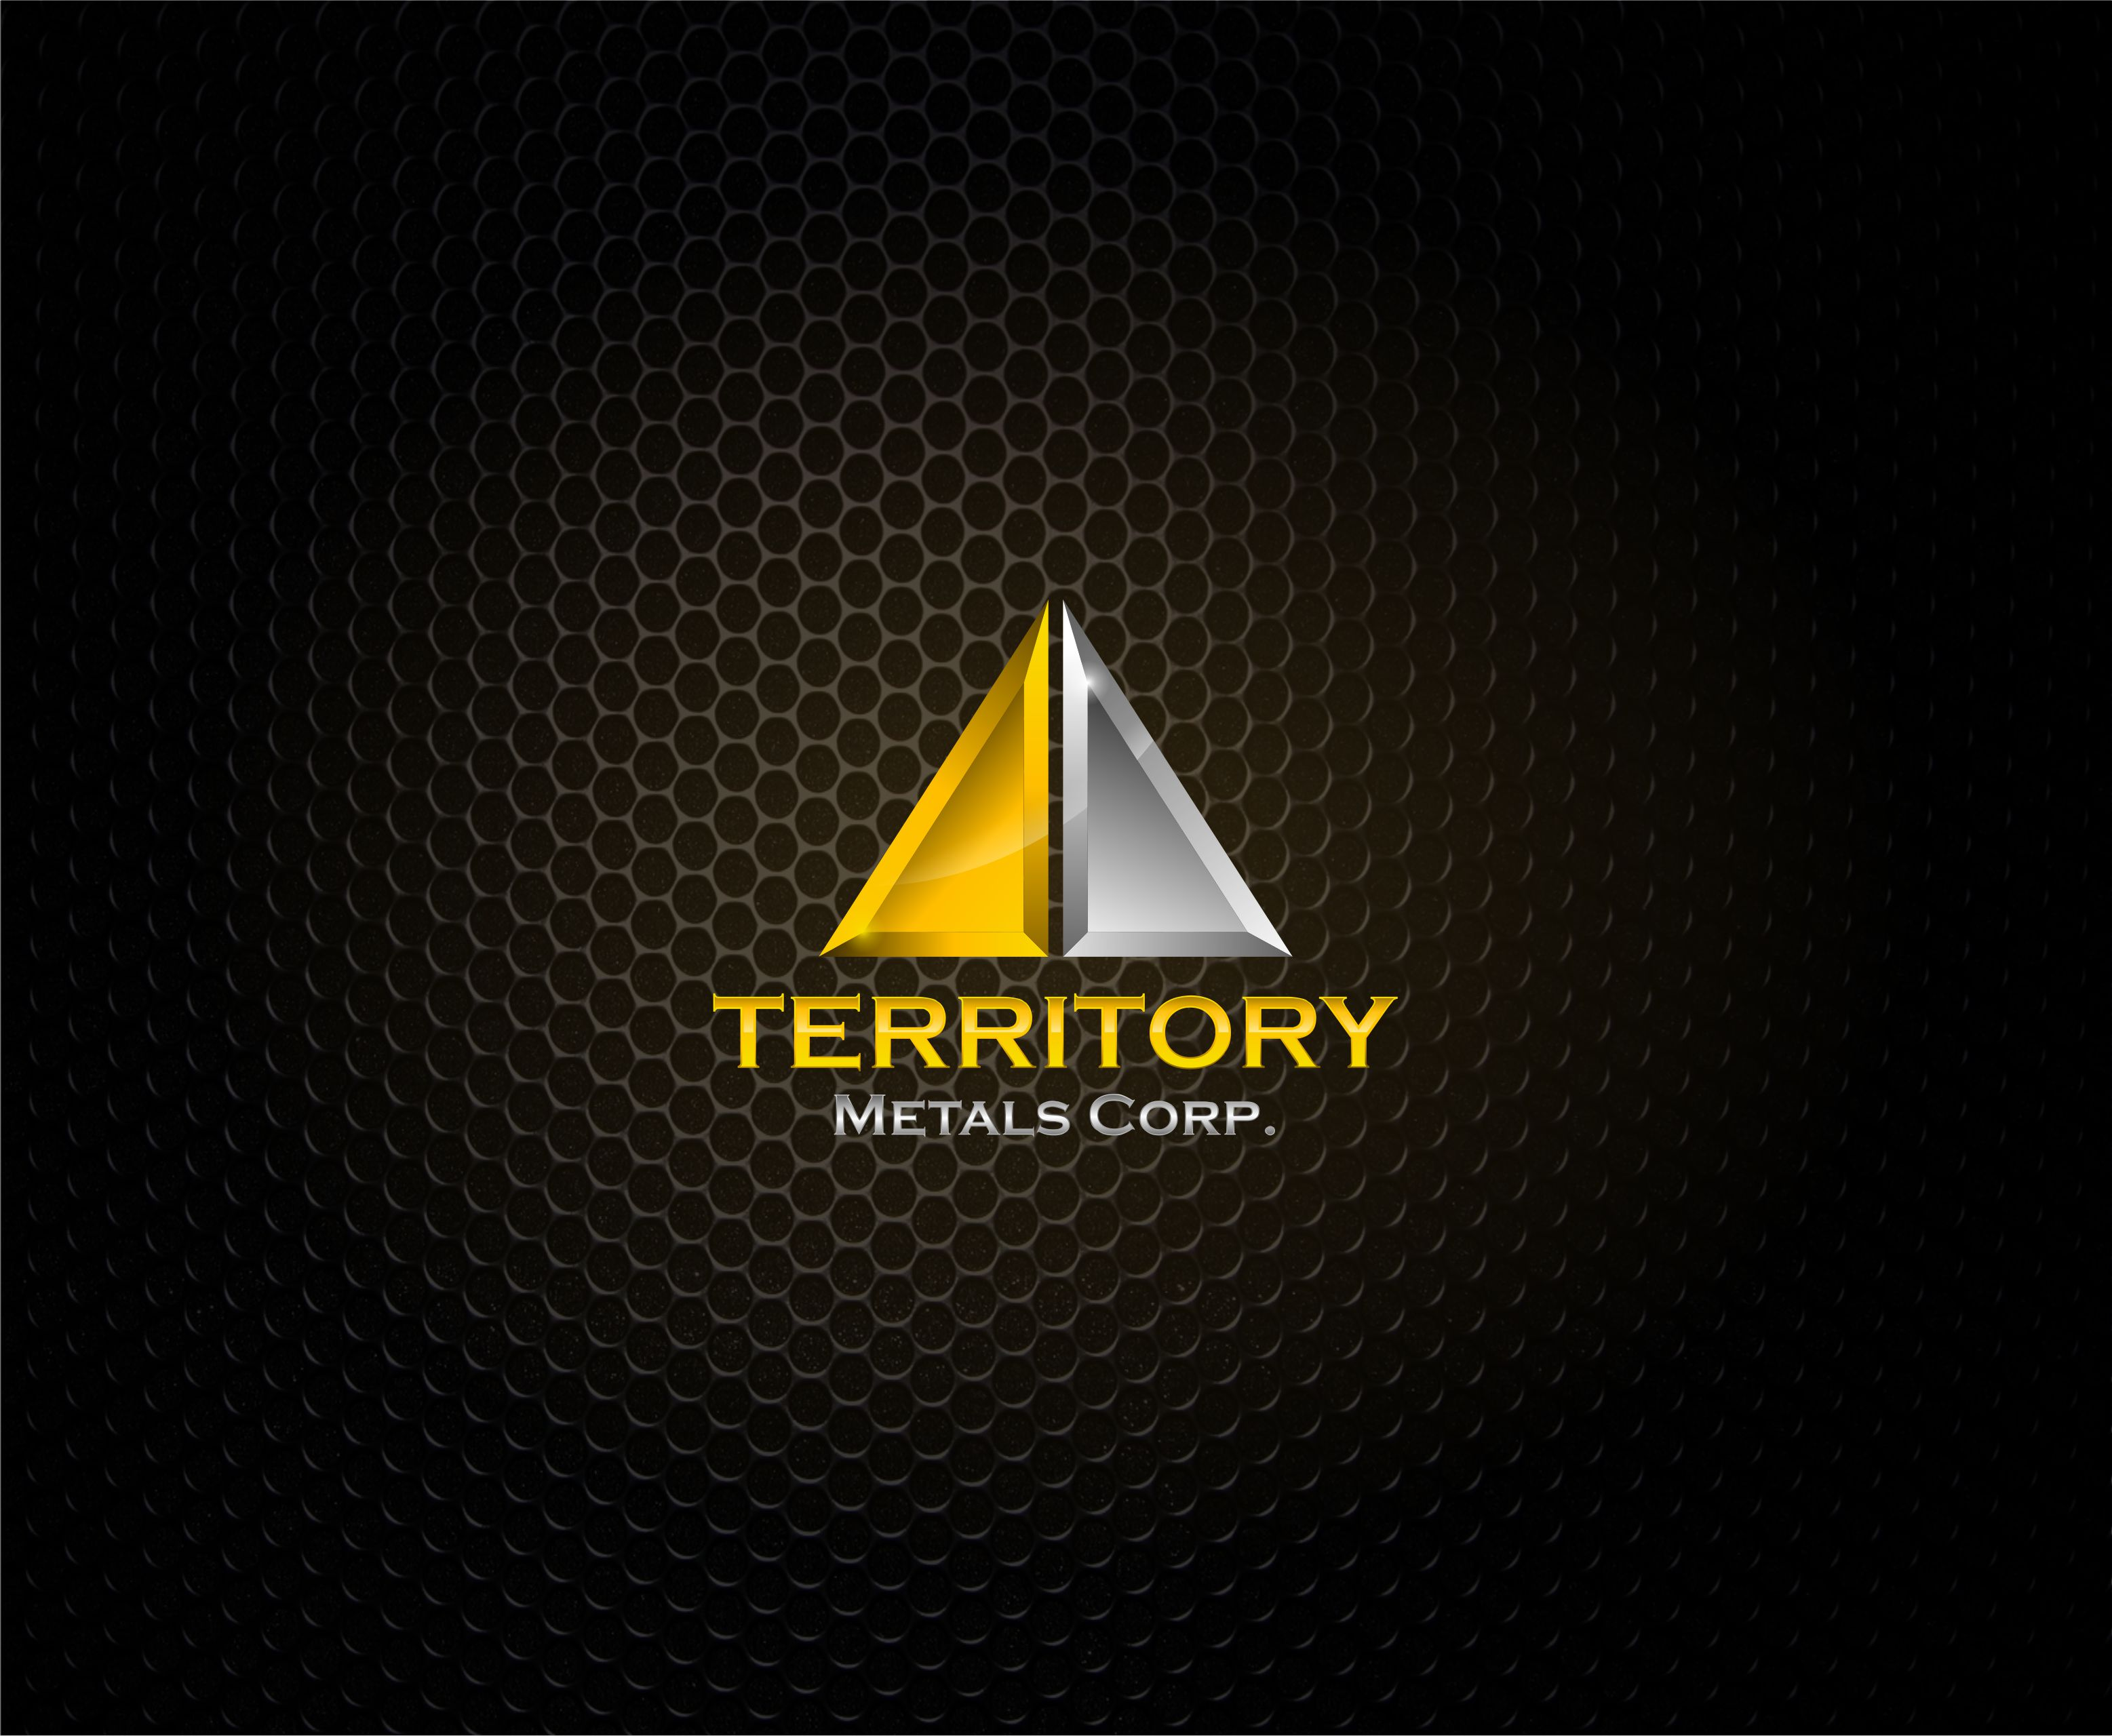 Logo Design by Raymond Garcia - Entry No. 95 in the Logo Design Contest Unique Logo Design Wanted for Territory Metals Corp..